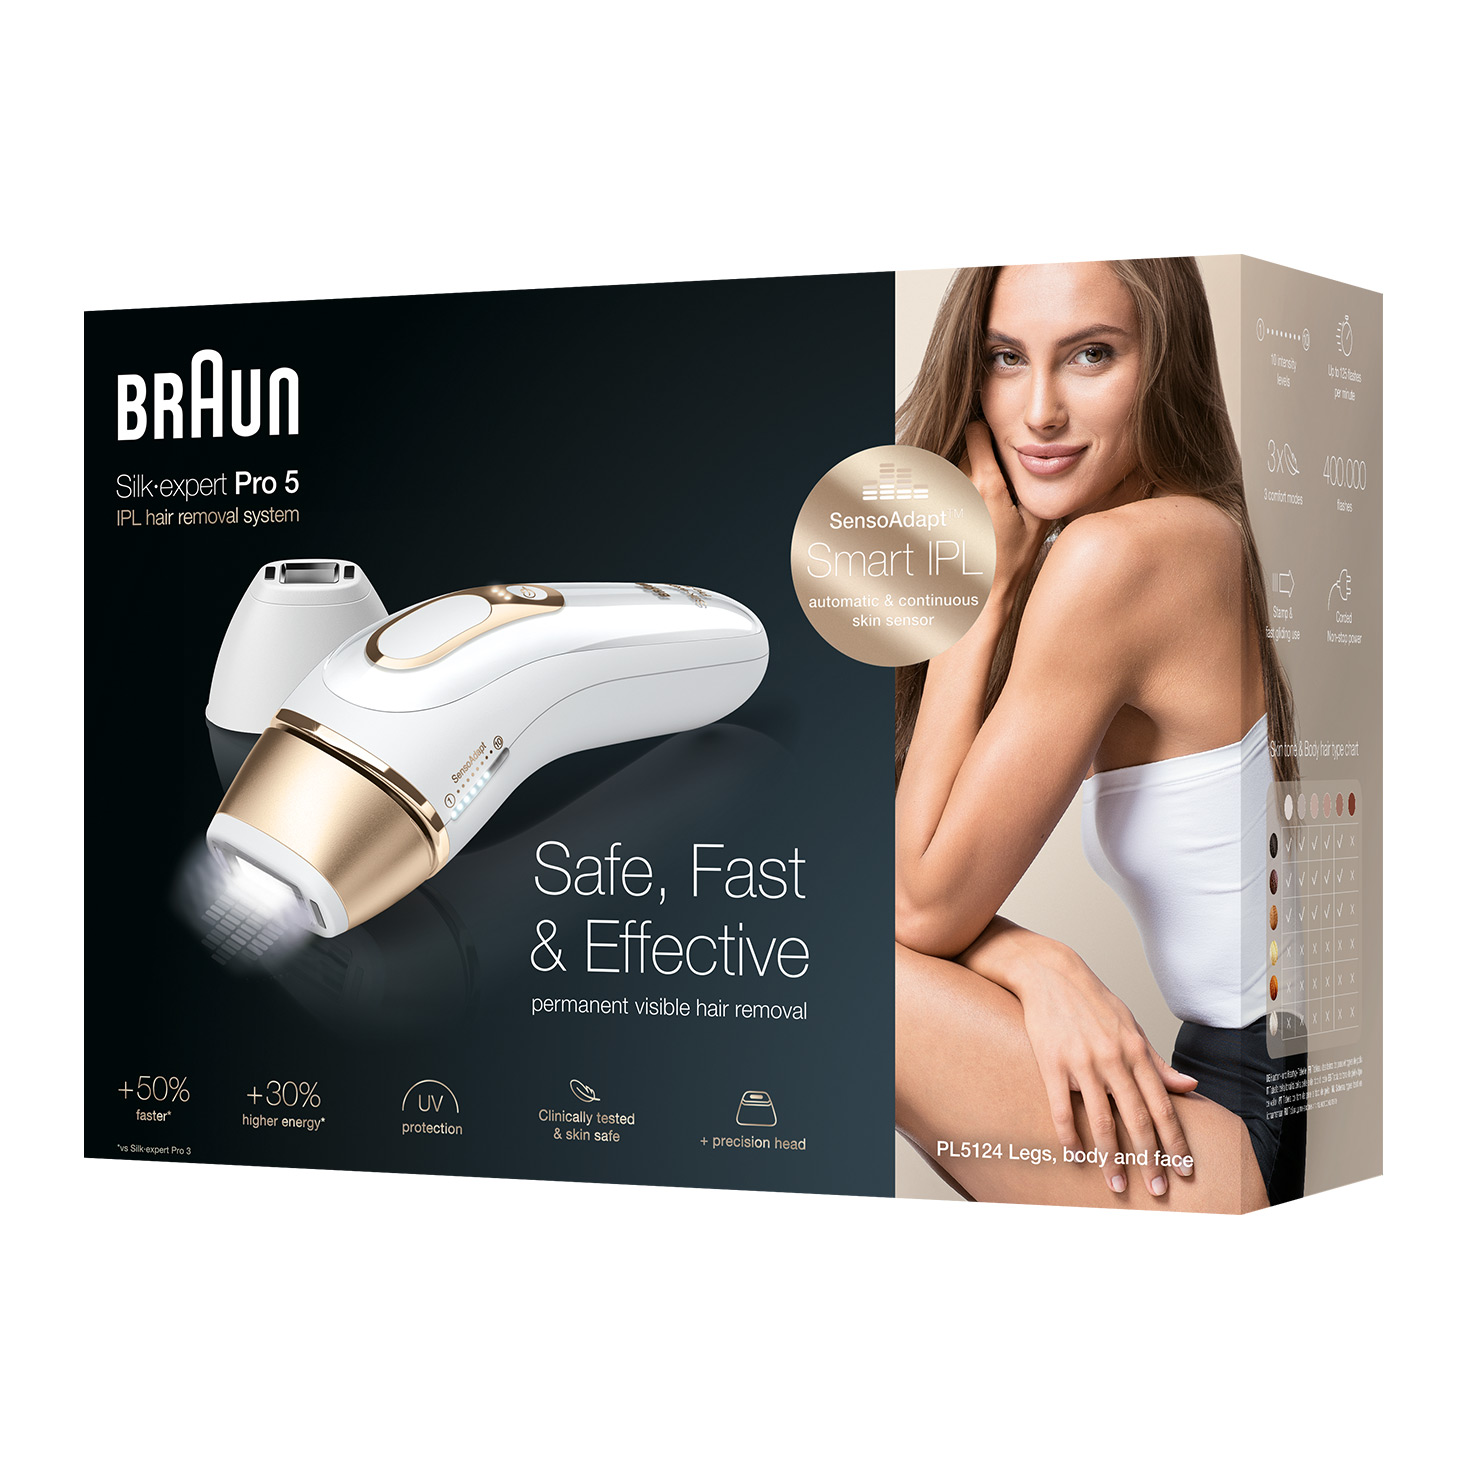 Braun Silk-expert Pro 5 PL5124 - Packaging